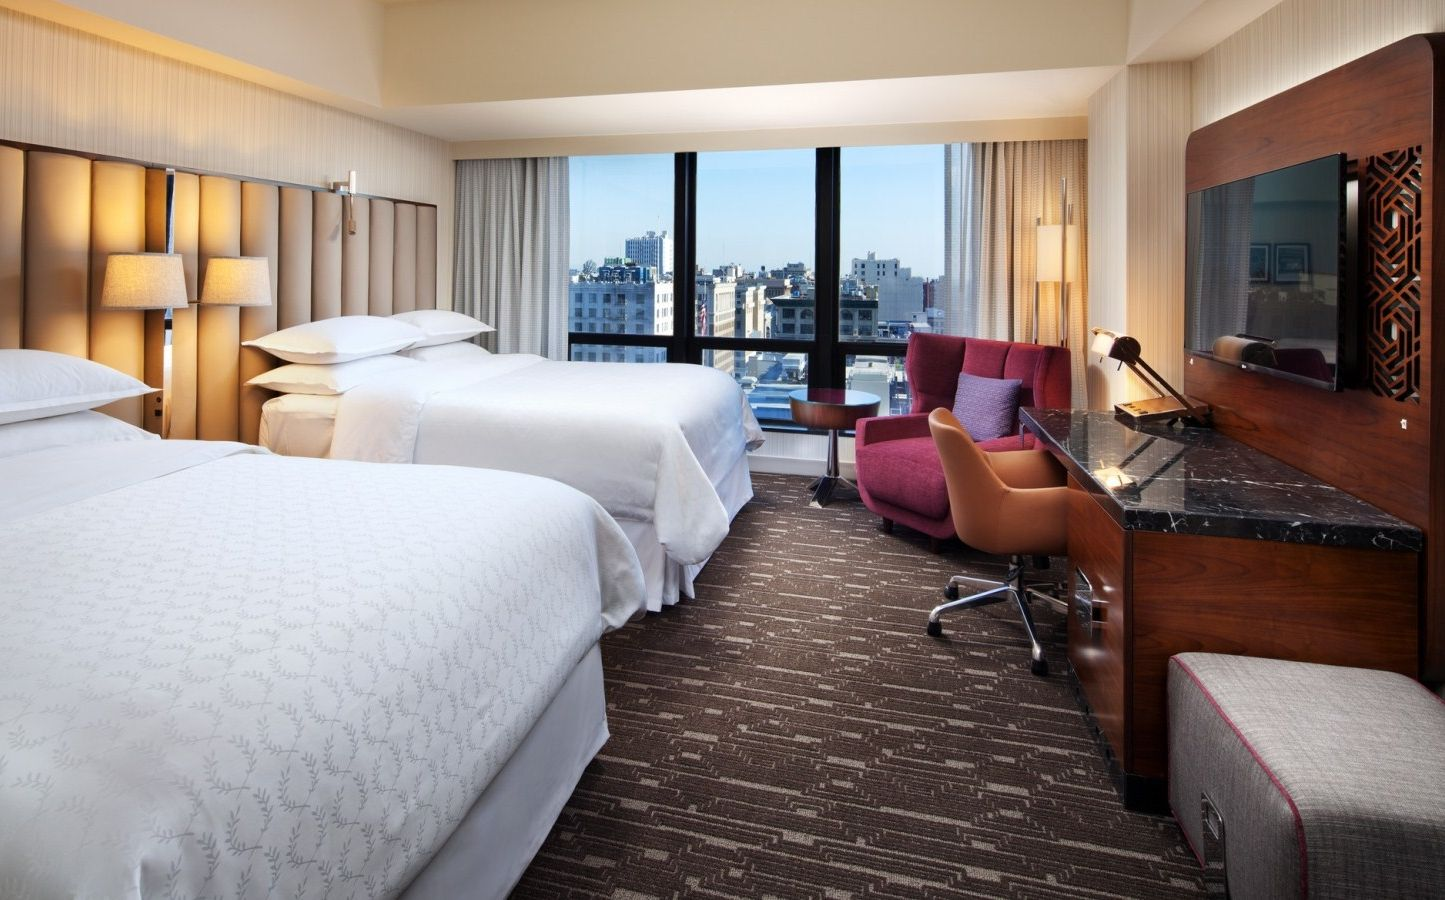 Los Angeles Lodging - Accessible Guestroom | Sheraton Grand Los Angeles